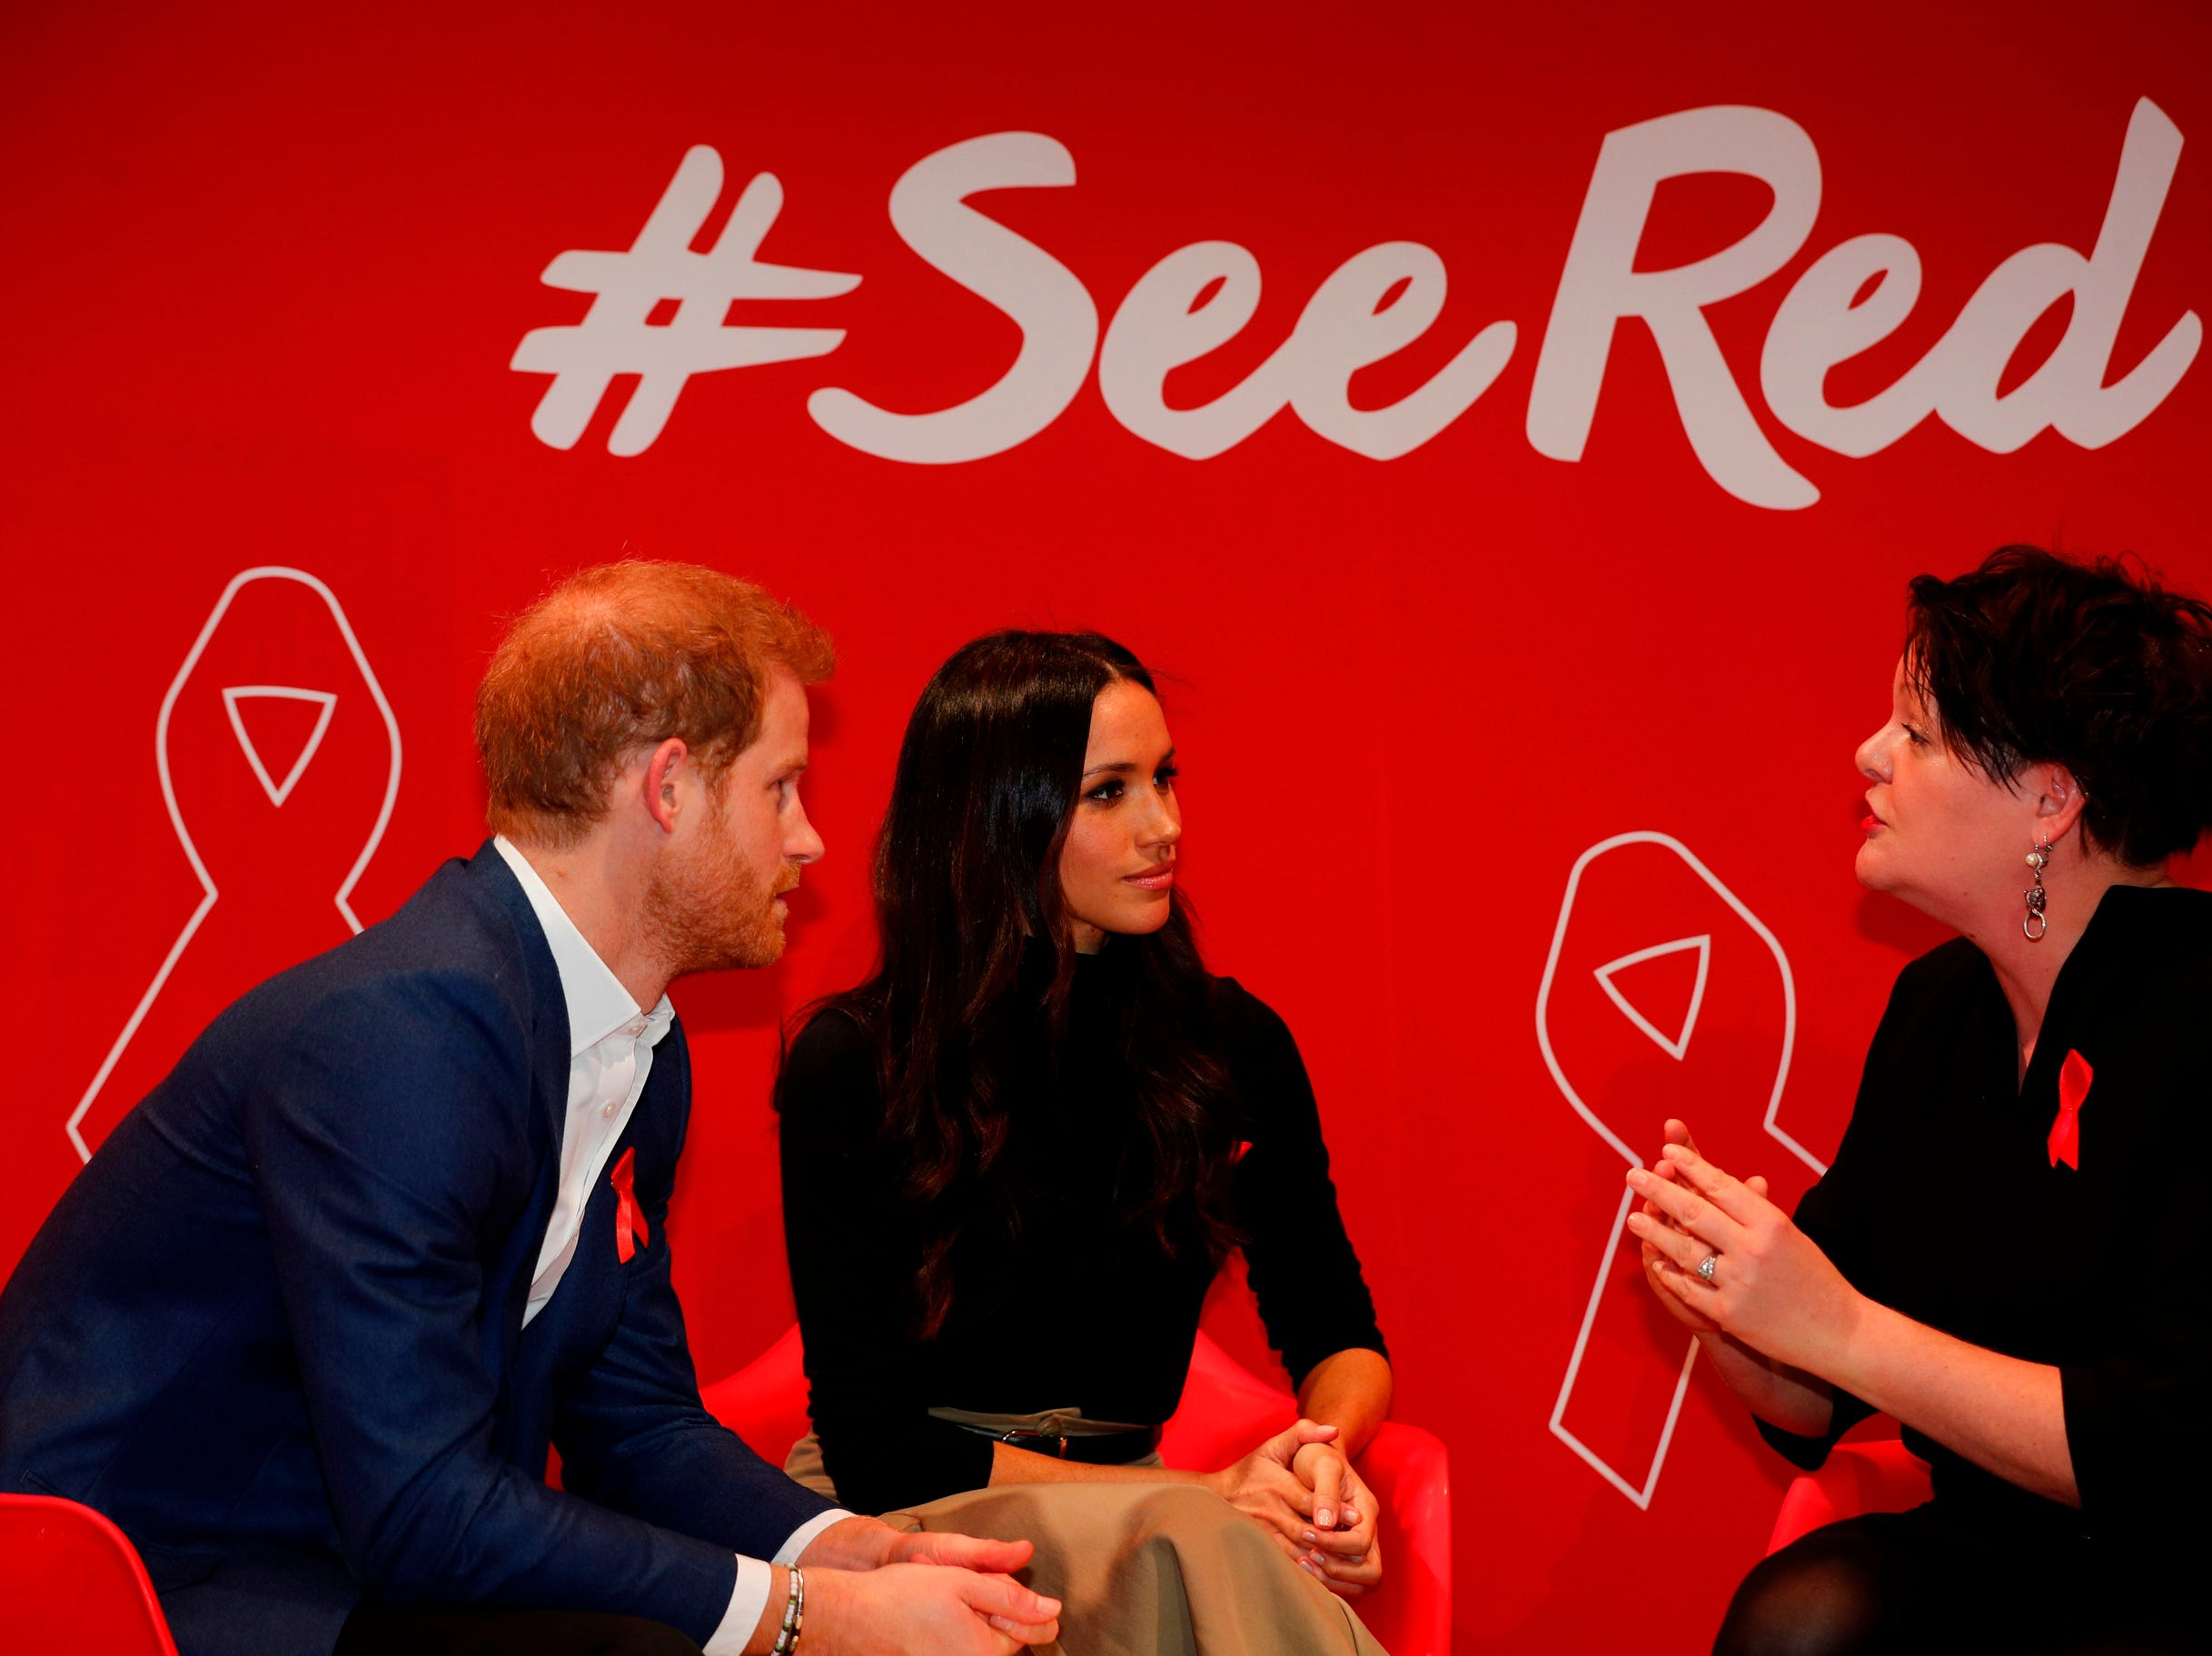 Britain's Prince Harry and his fiancee US actress Meghan Markle gesture as they tour the Terrence Higgins Trust World AIDS Day charity fair at Nottingham Contemporary in Nottingham, central England, on Dec. 1, 2017.